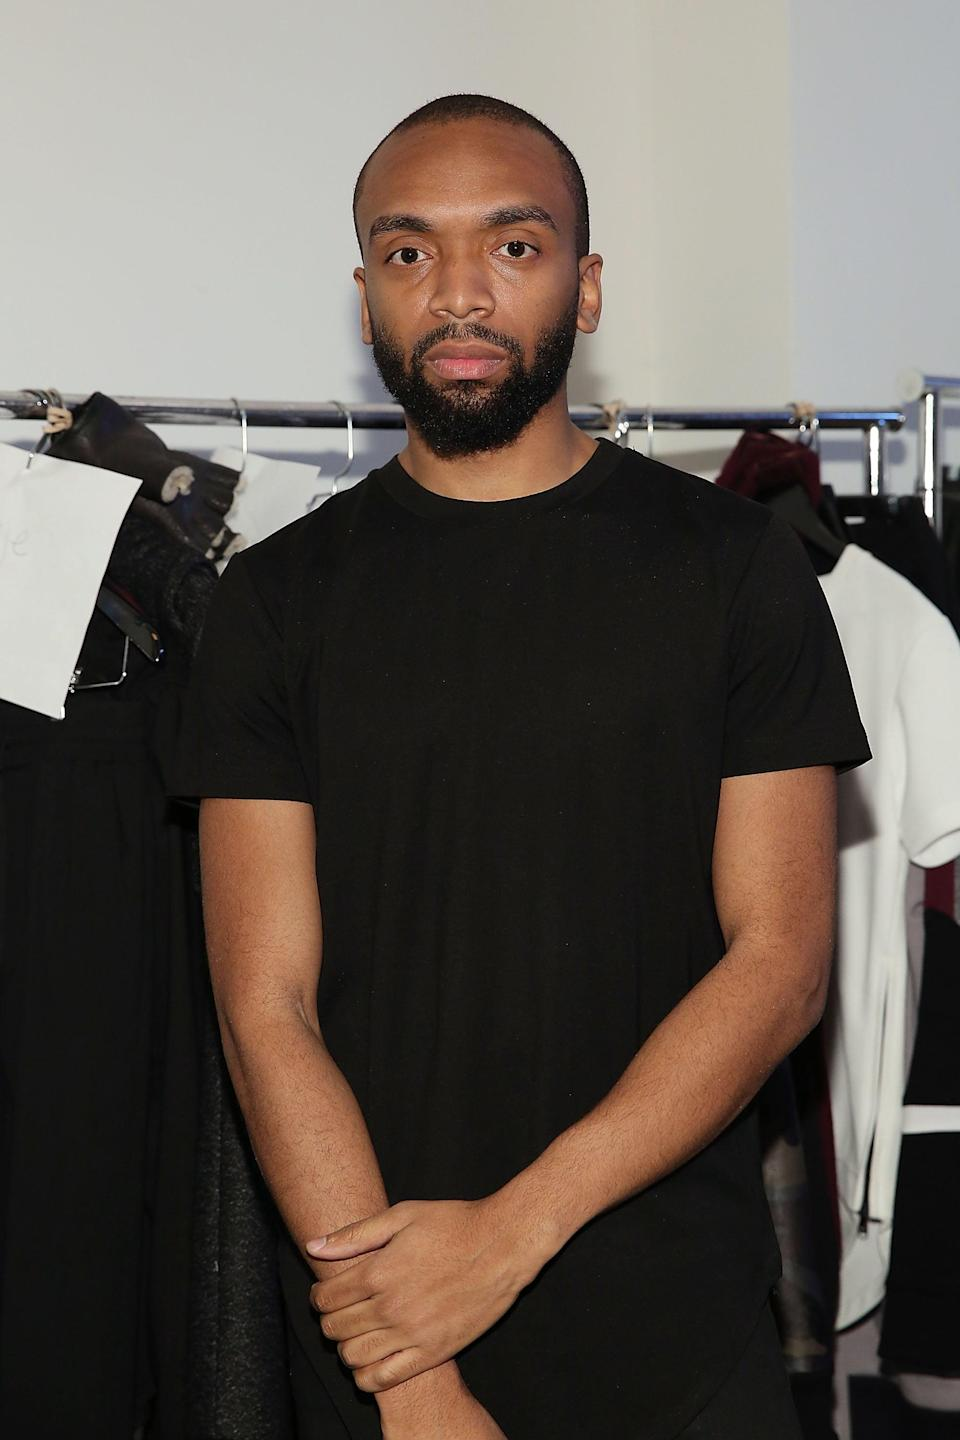 "<p>While Pyer Moss's Kerby Jean-Raymond is no stranger to success, the designer, whose <a href=""https://www.popsugar.com/fashion/photo-gallery/46601431/image/46684767/Pyer-Moss-SpringSummer-2020"" class=""link rapid-noclick-resp"" rel=""nofollow noopener"" target=""_blank"" data-ylk=""slk:collections often celebrate Black history"">collections often celebrate Black history</a>, continues to shine with his line and multiple collaborations with brands like Reebok. </p>"